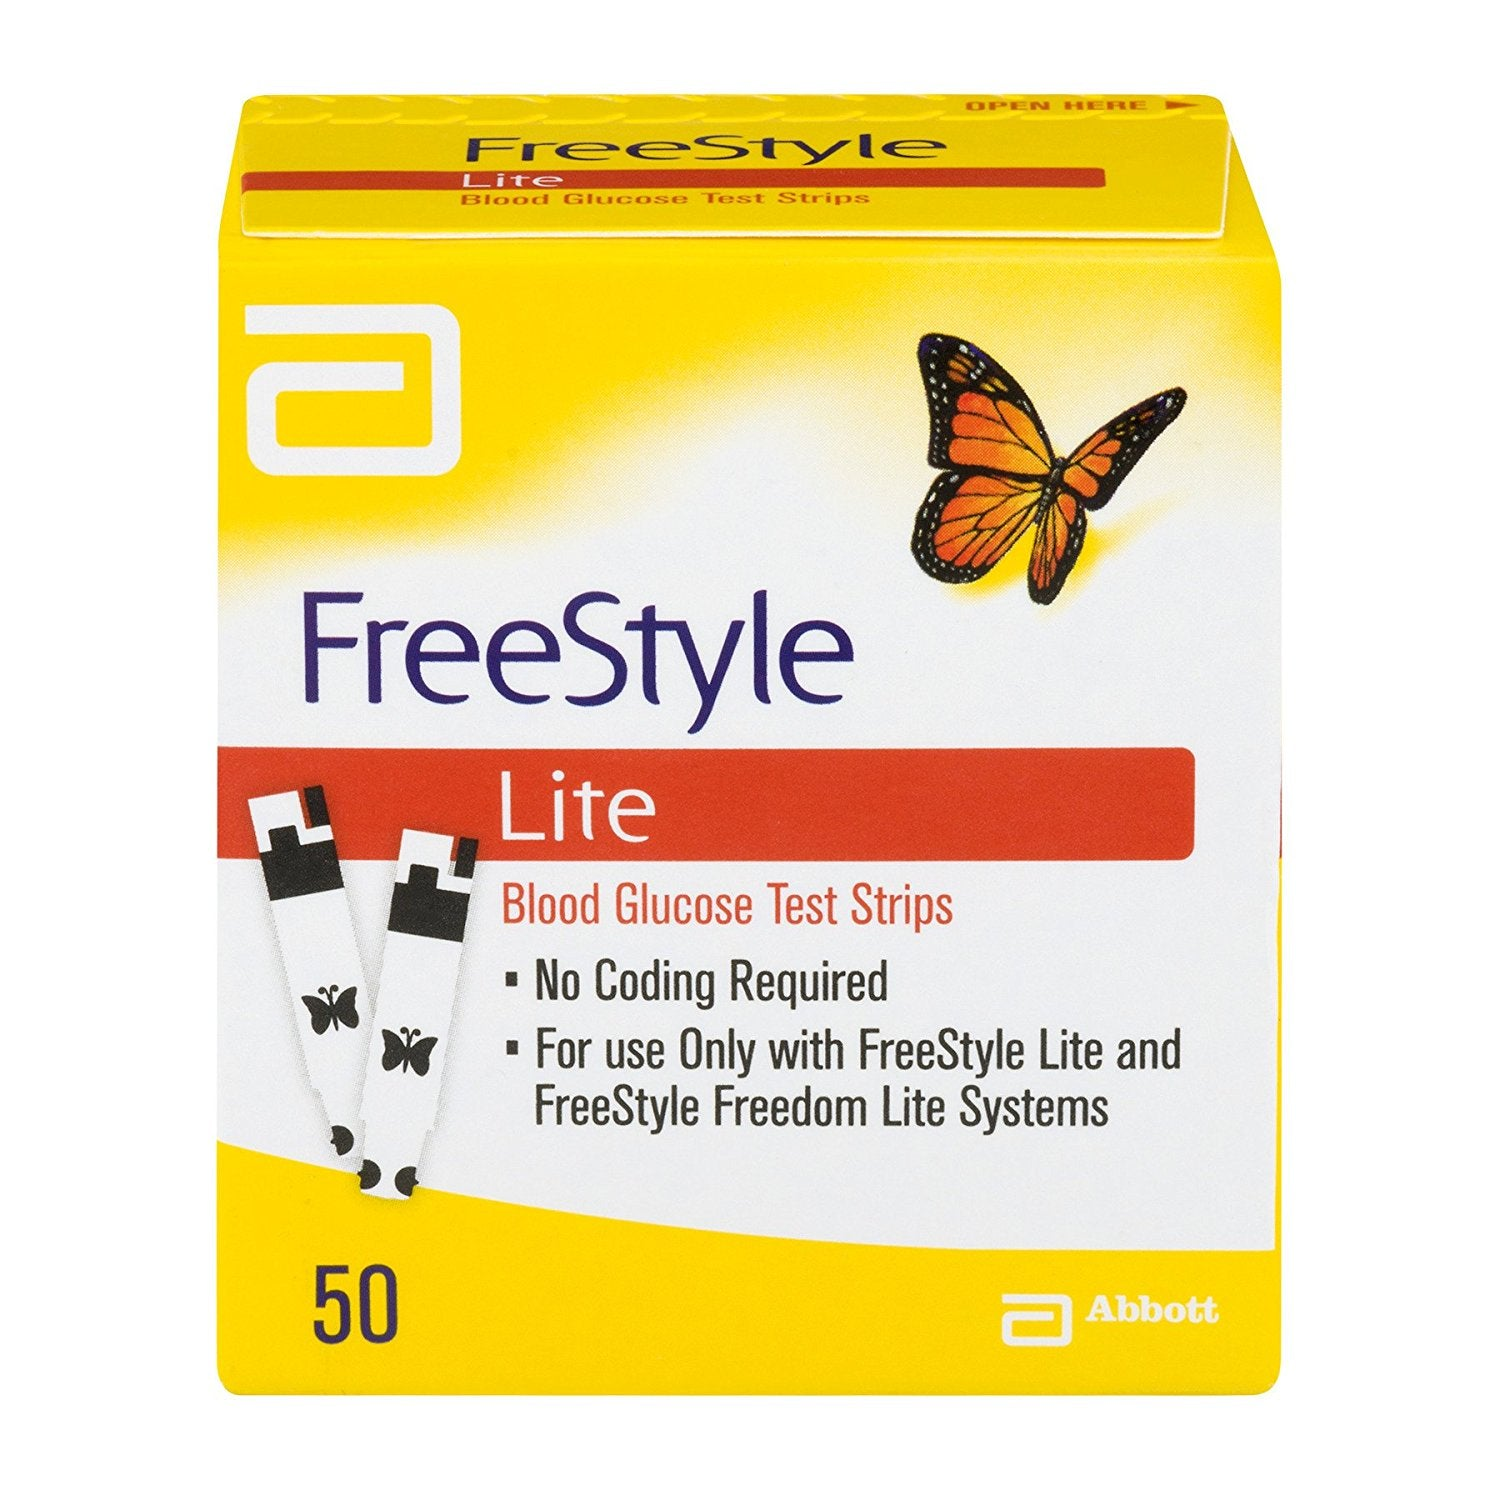 2-3 Per Day (100 FreeStyle Lite Strips)